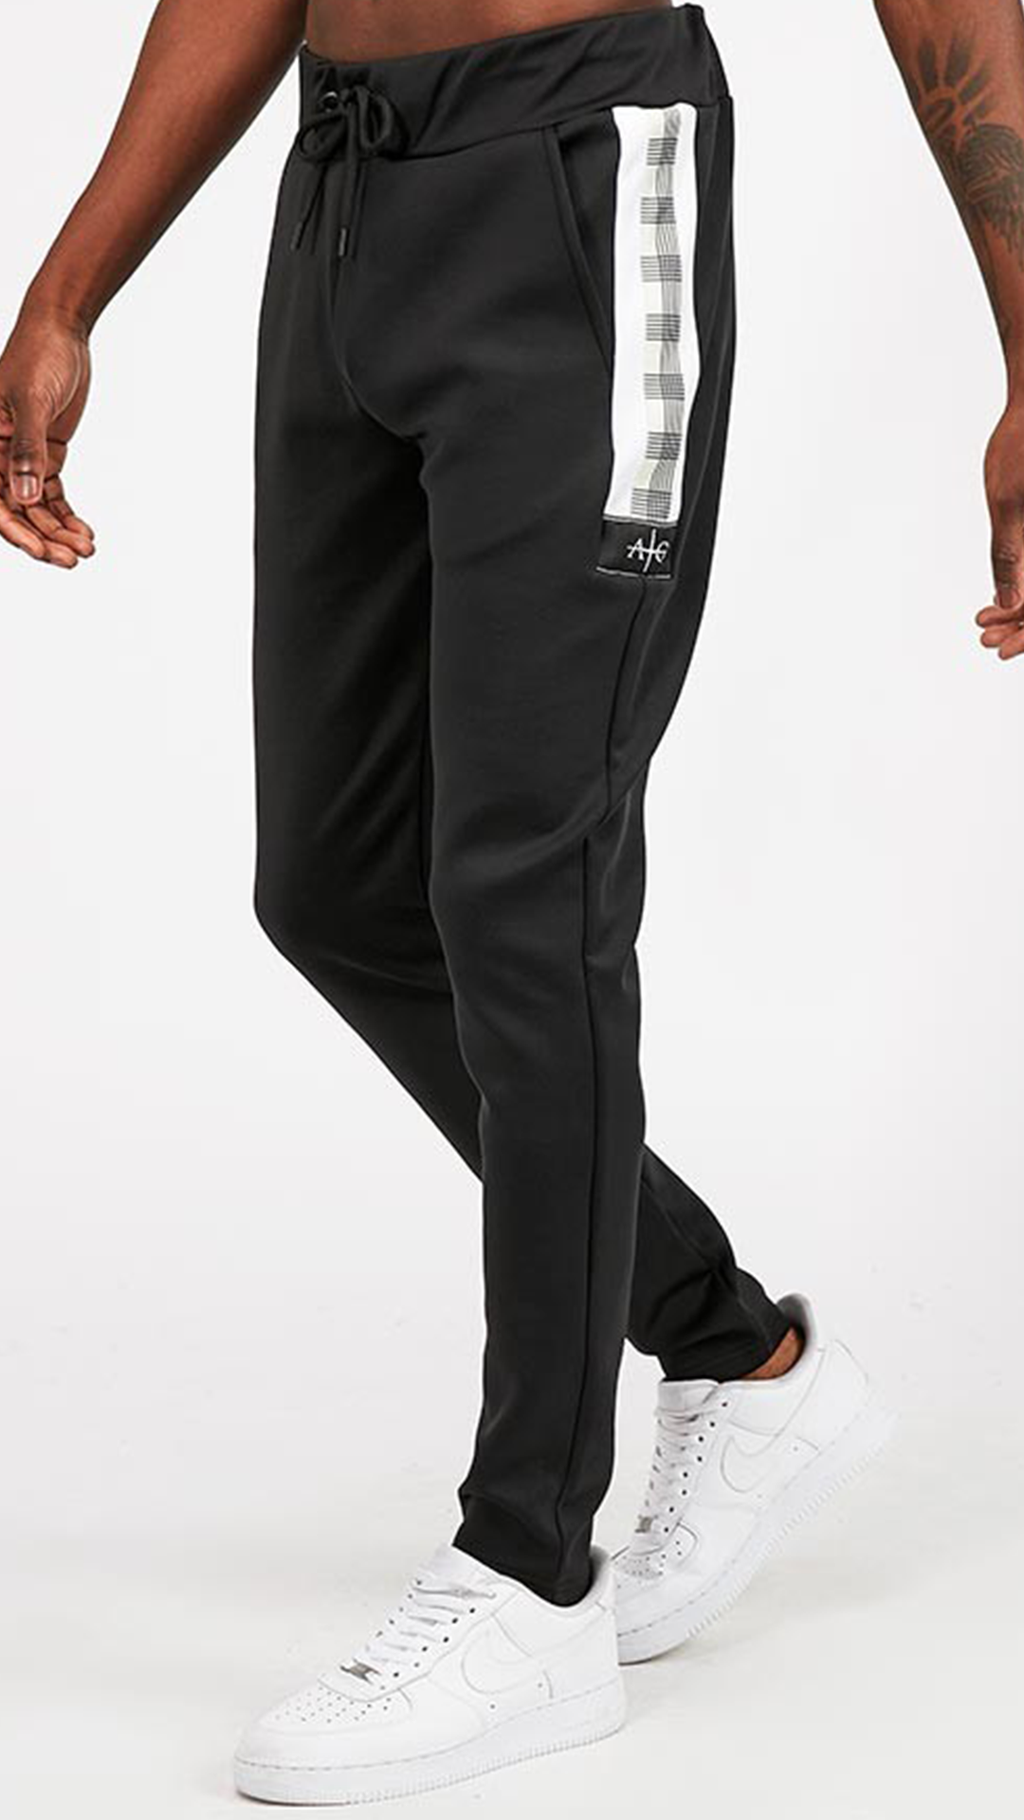 Men's Ravello Pants in Black 2.0.